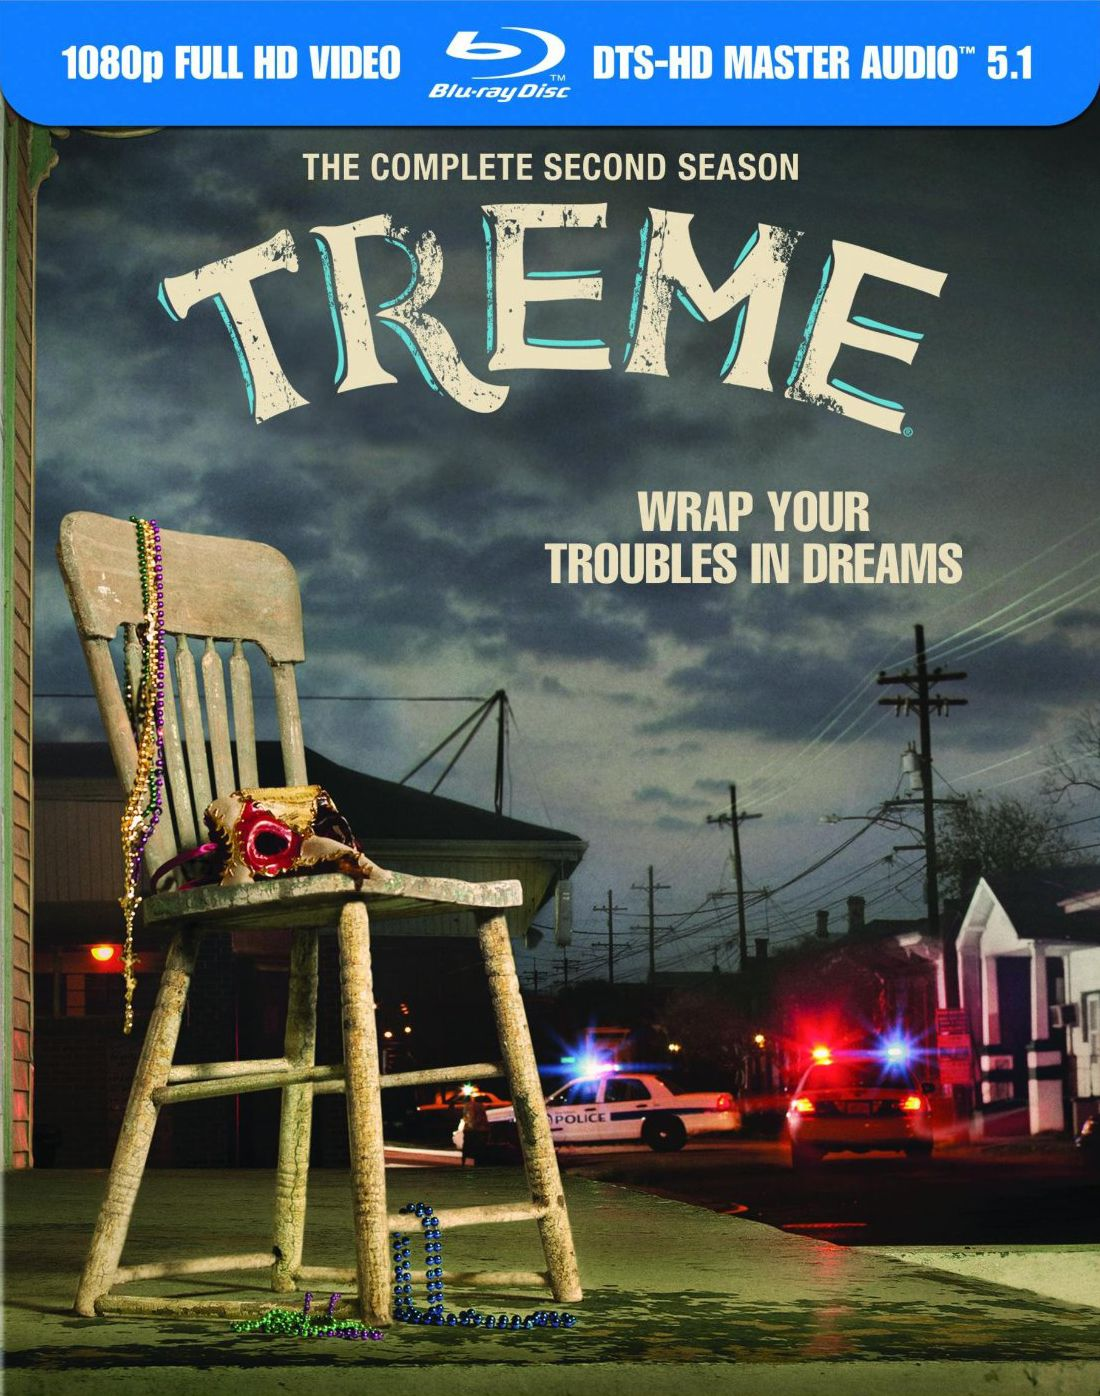 Publicity still for Treme: The Complete Second Season